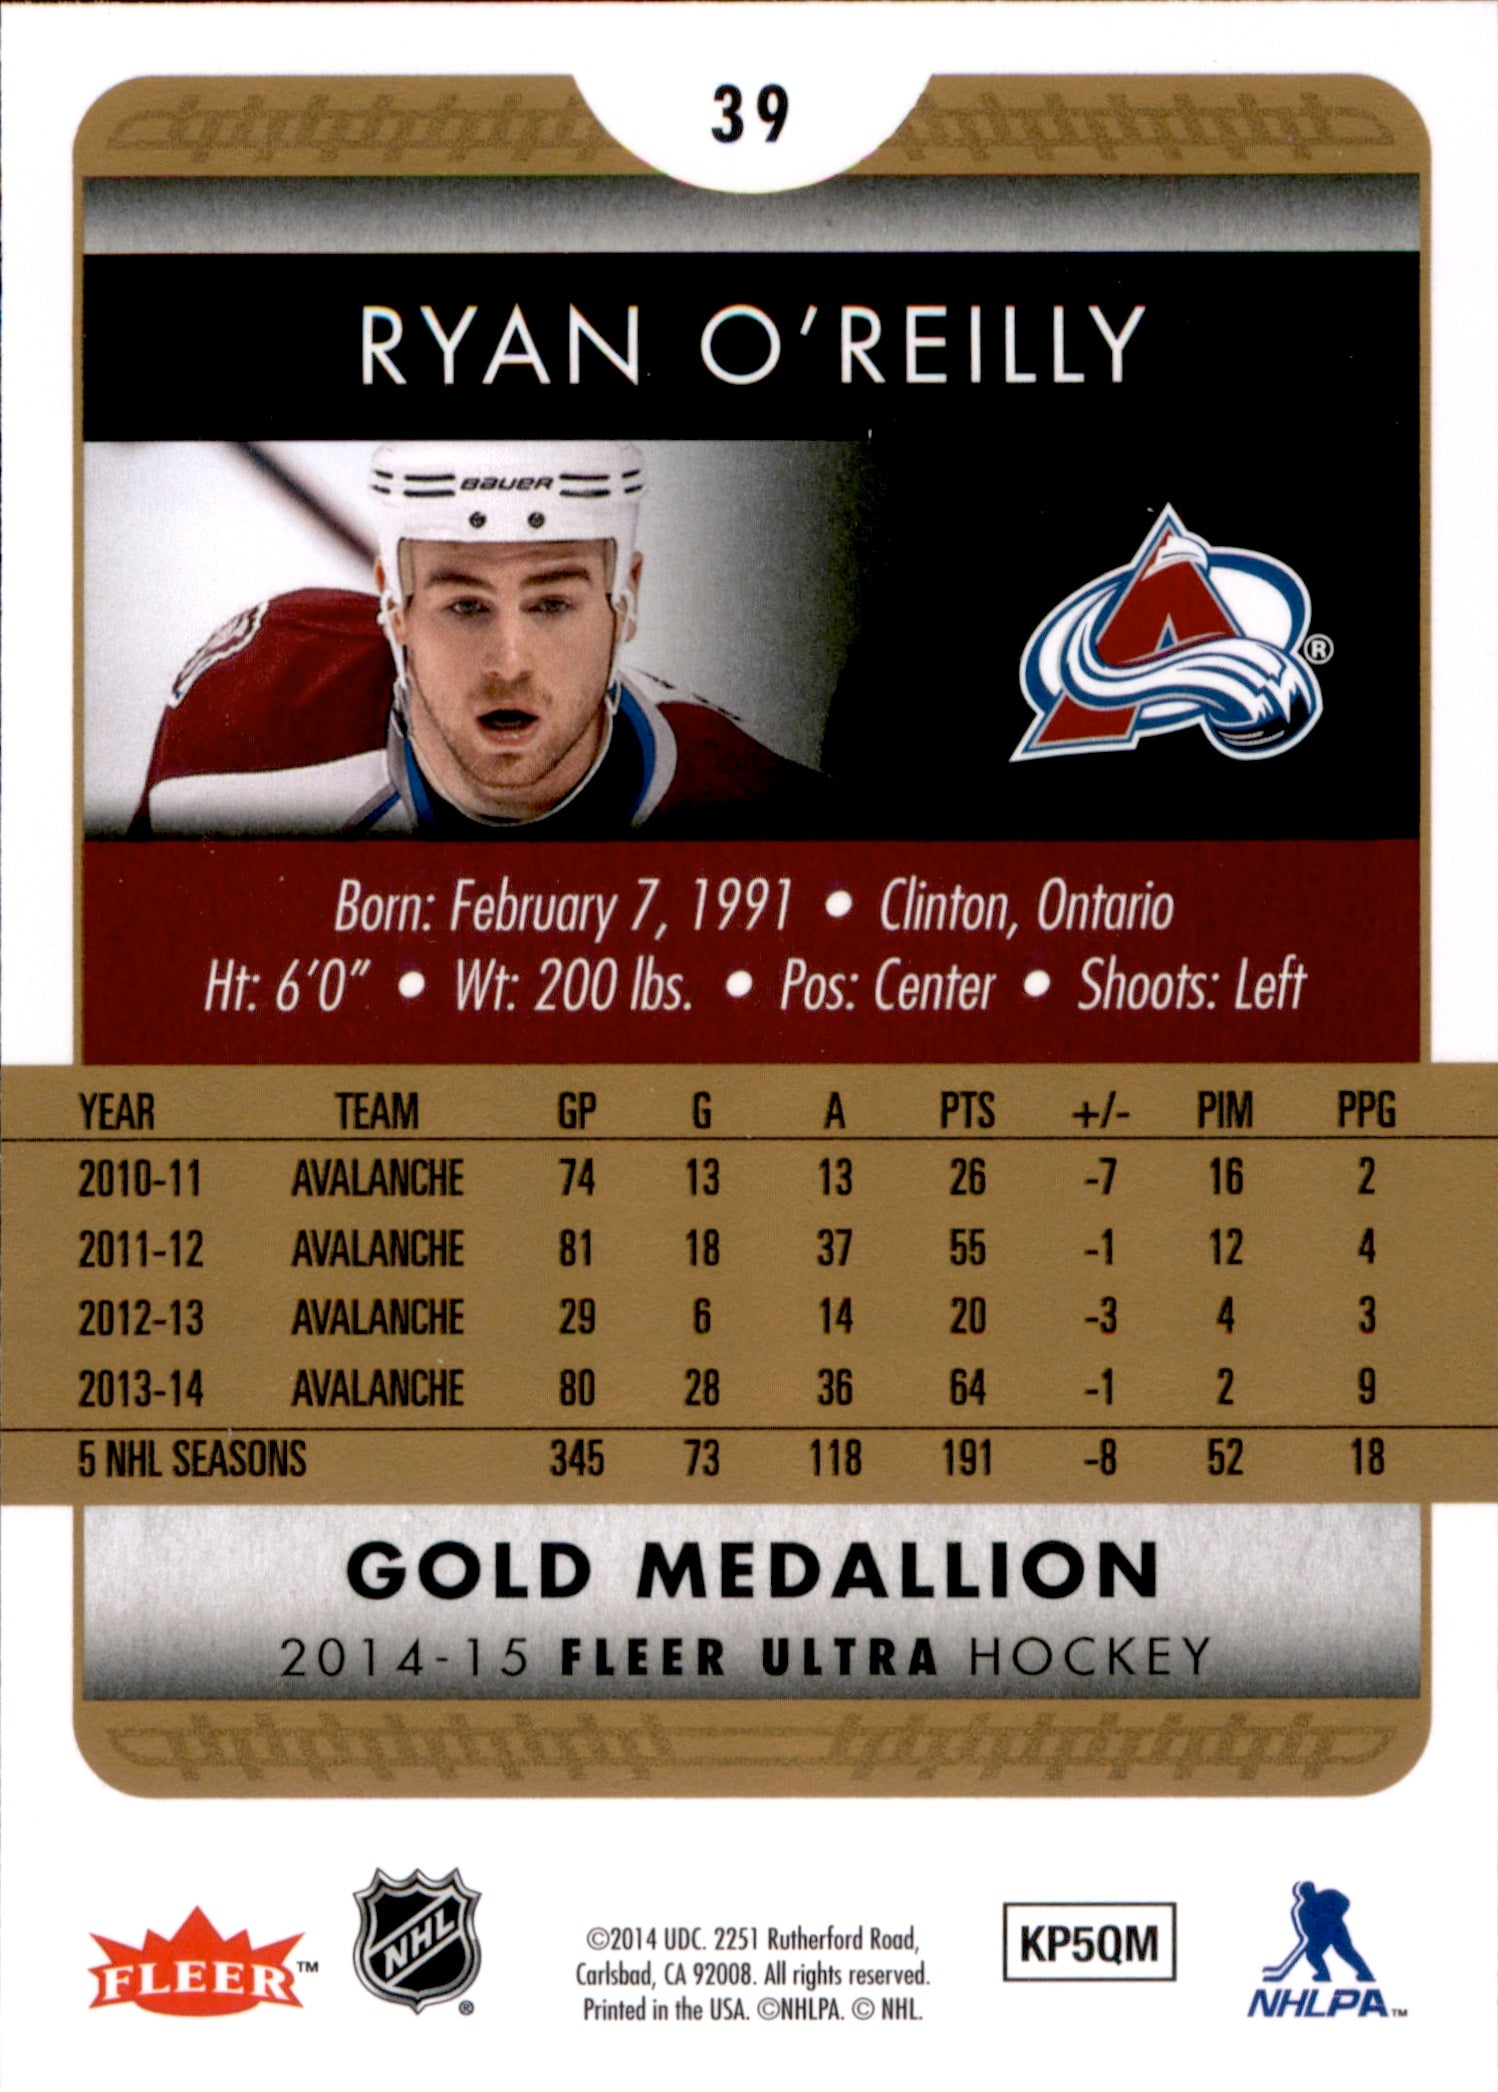 2014-15 Fleer Ultra Gold Medallion #039 Ryan O'Reilly | Eastridge Sports Cards